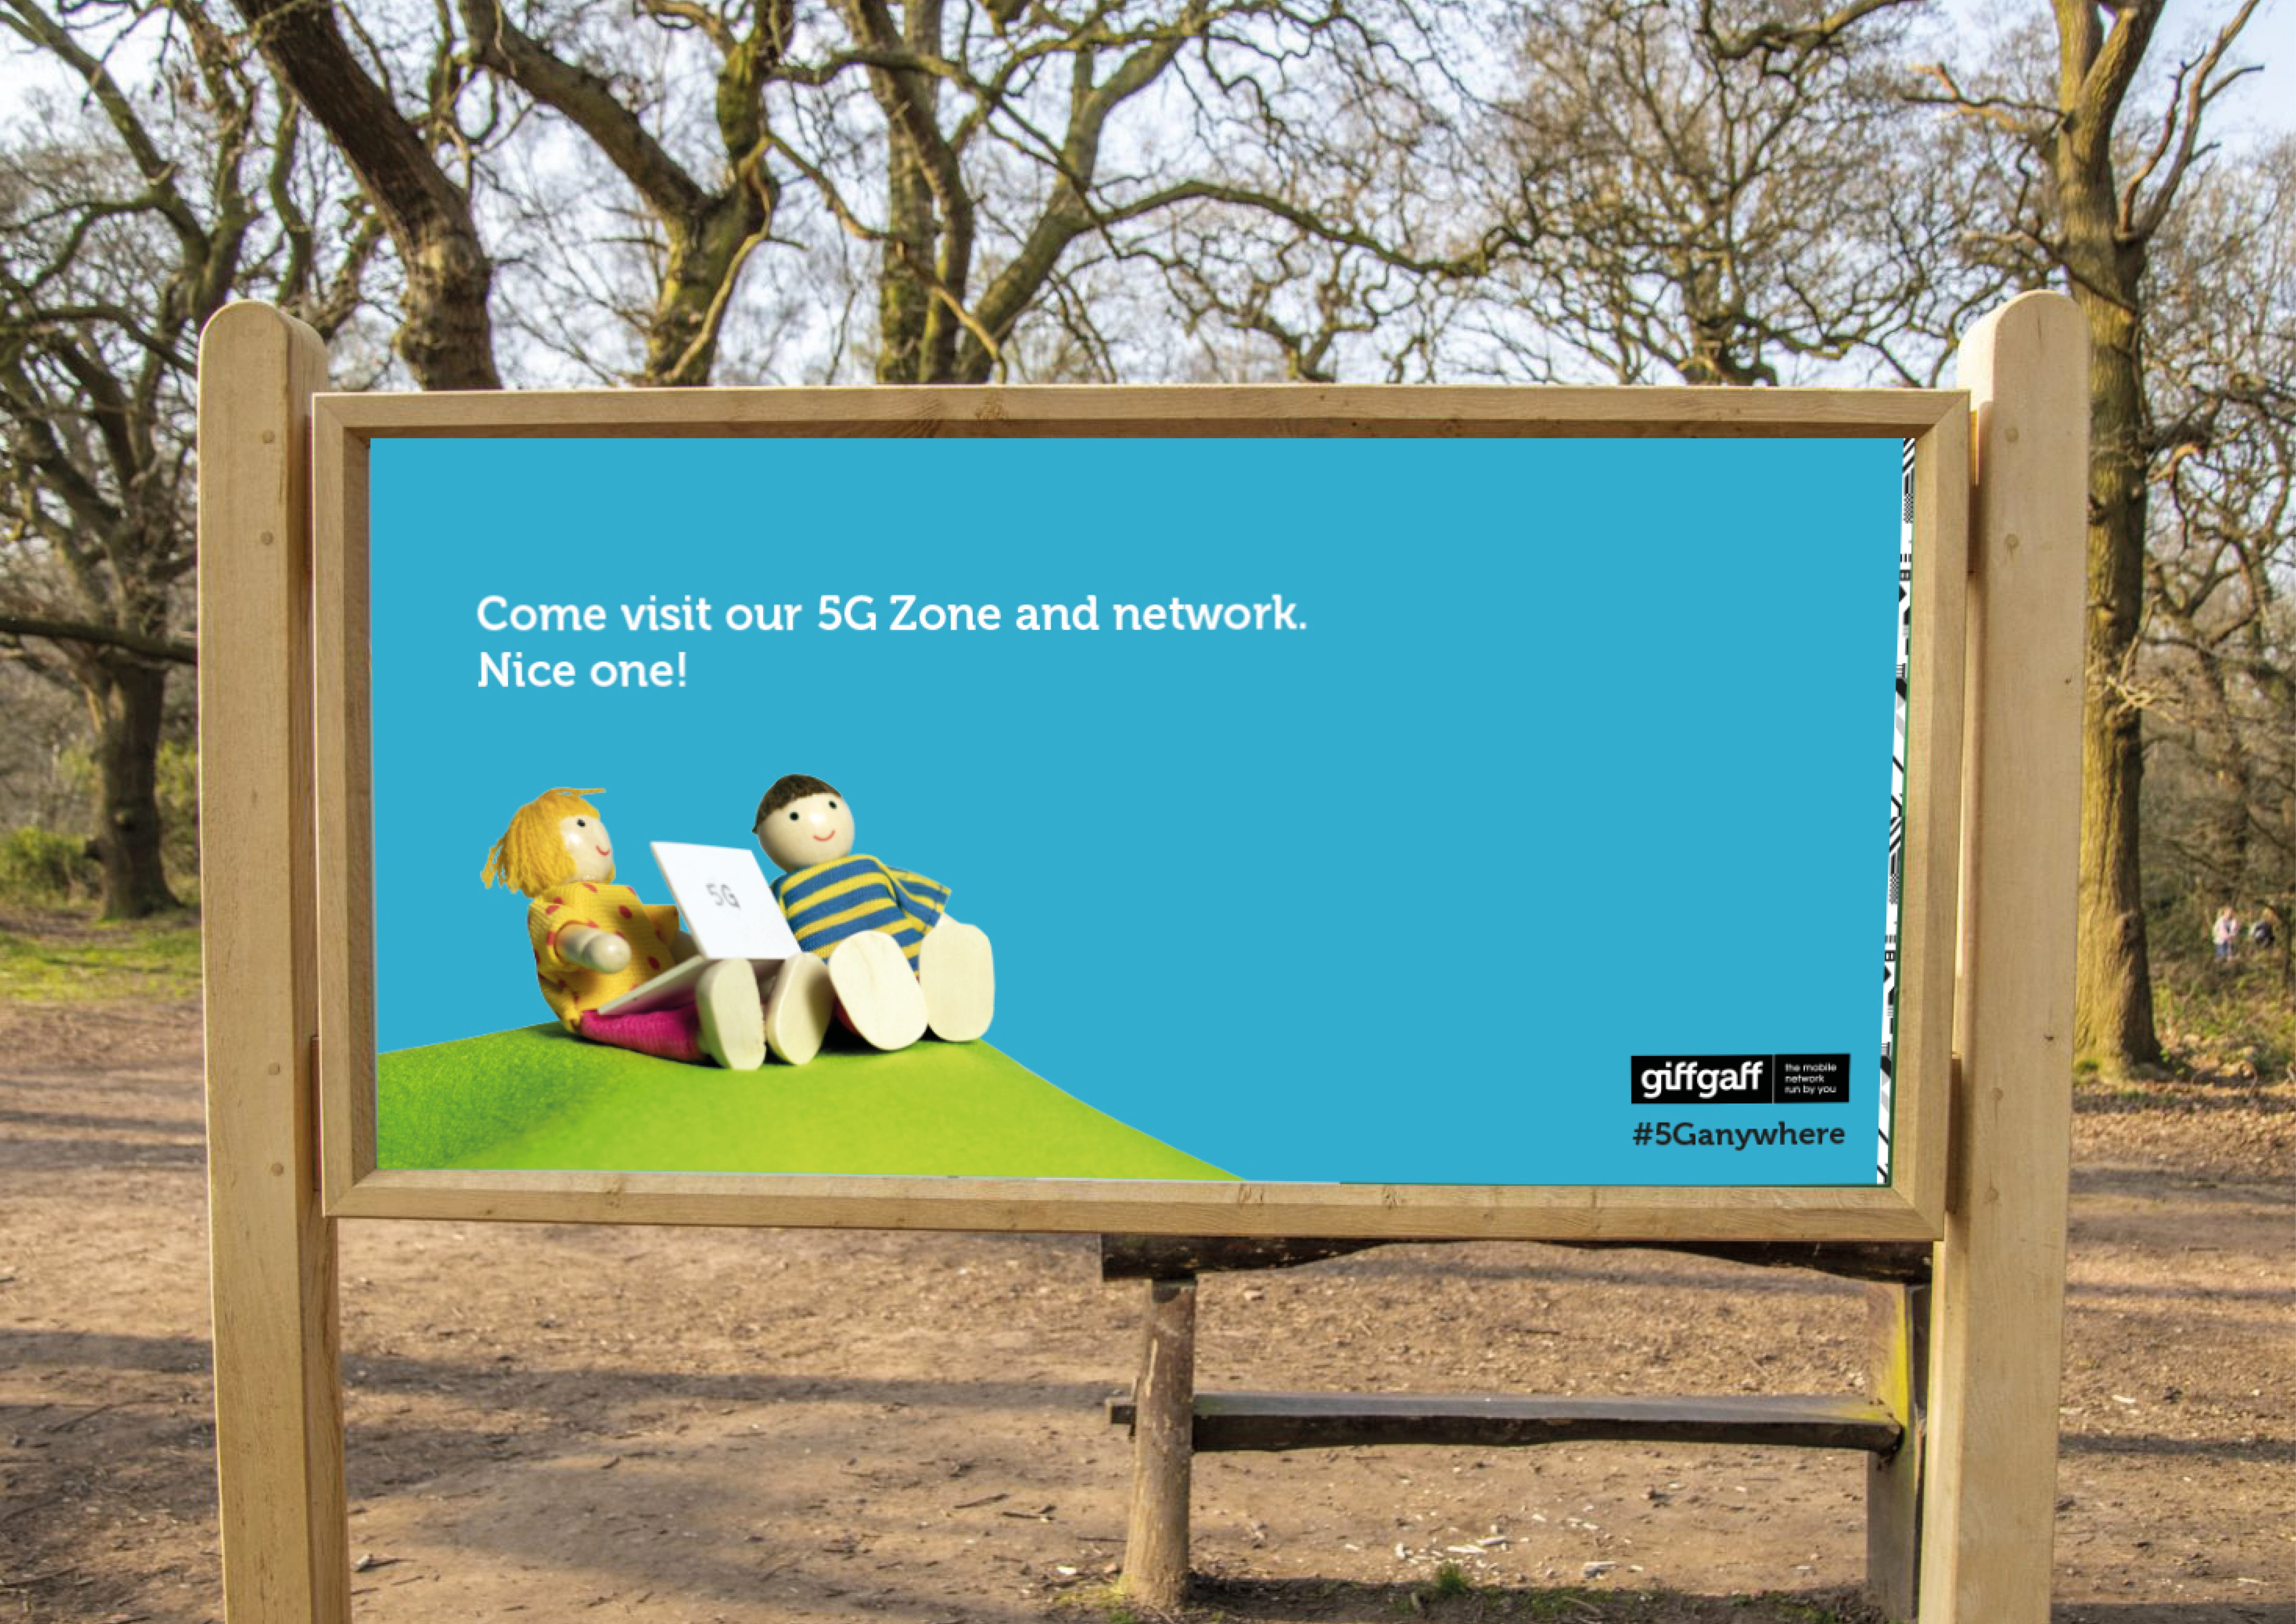 Photograph of a a sign in a park with posters for giffgaff.